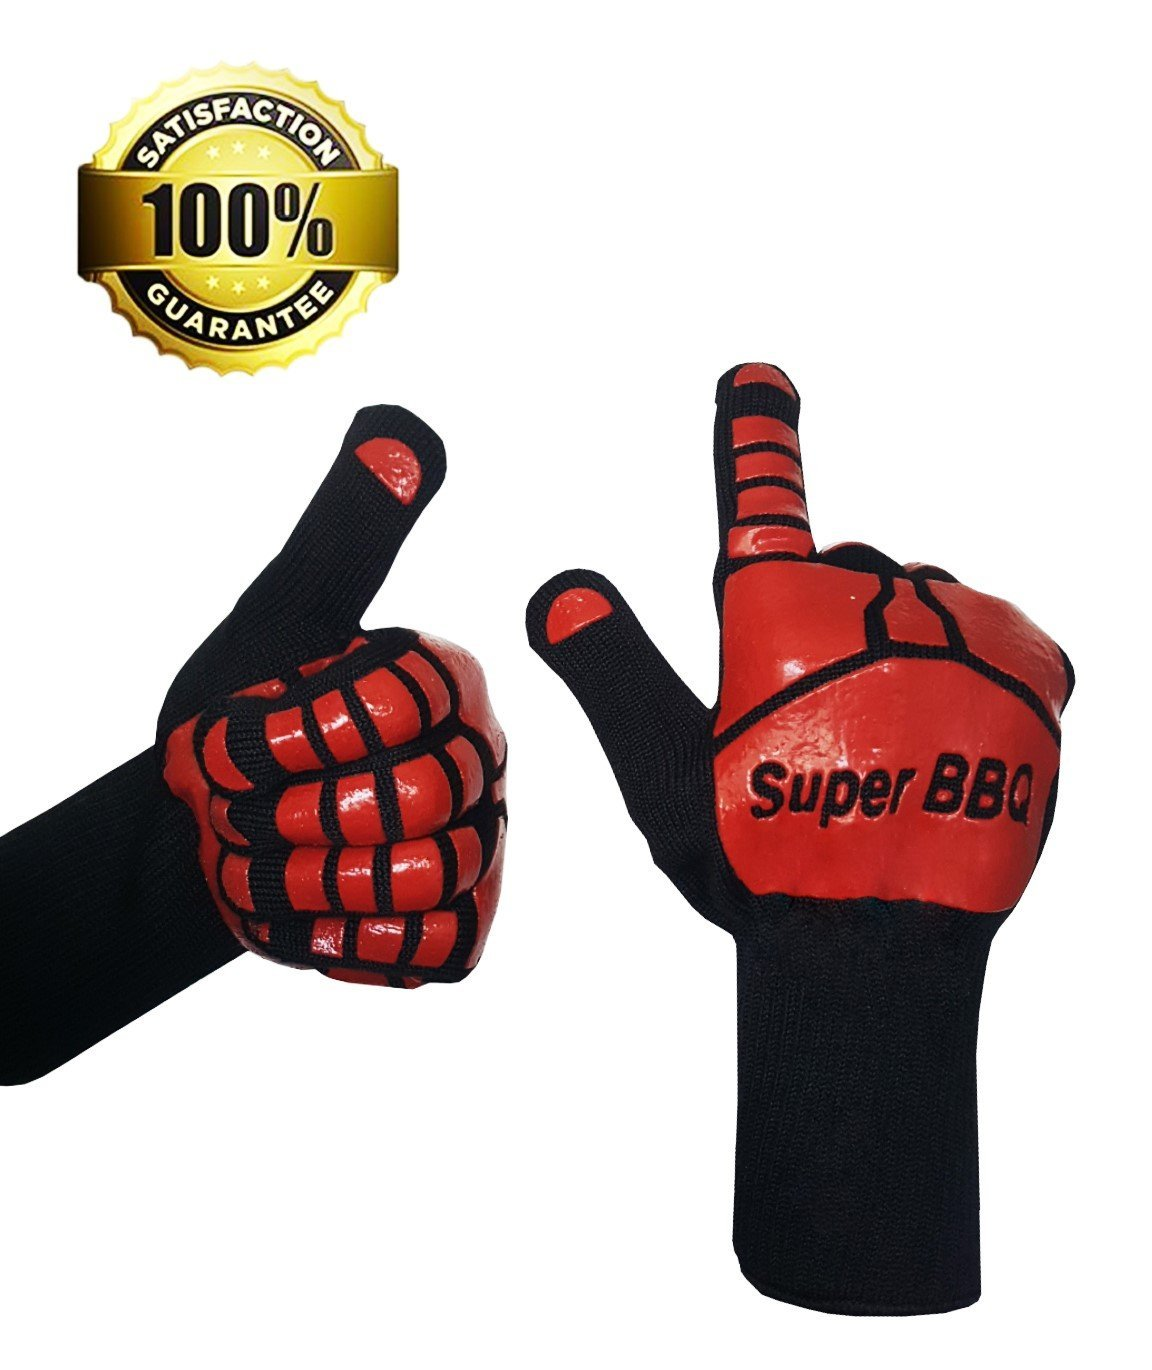 Super BBQ Heat Resistant Cooking Gloves | Baking, Oven & Barbecue Gloves | Fire Gloves For Fireplace & Fire Pit | Use As Grilling Gloves & BBQ Gloves | Smoker, Grill & Kitchen Accessories (2 Gloves)